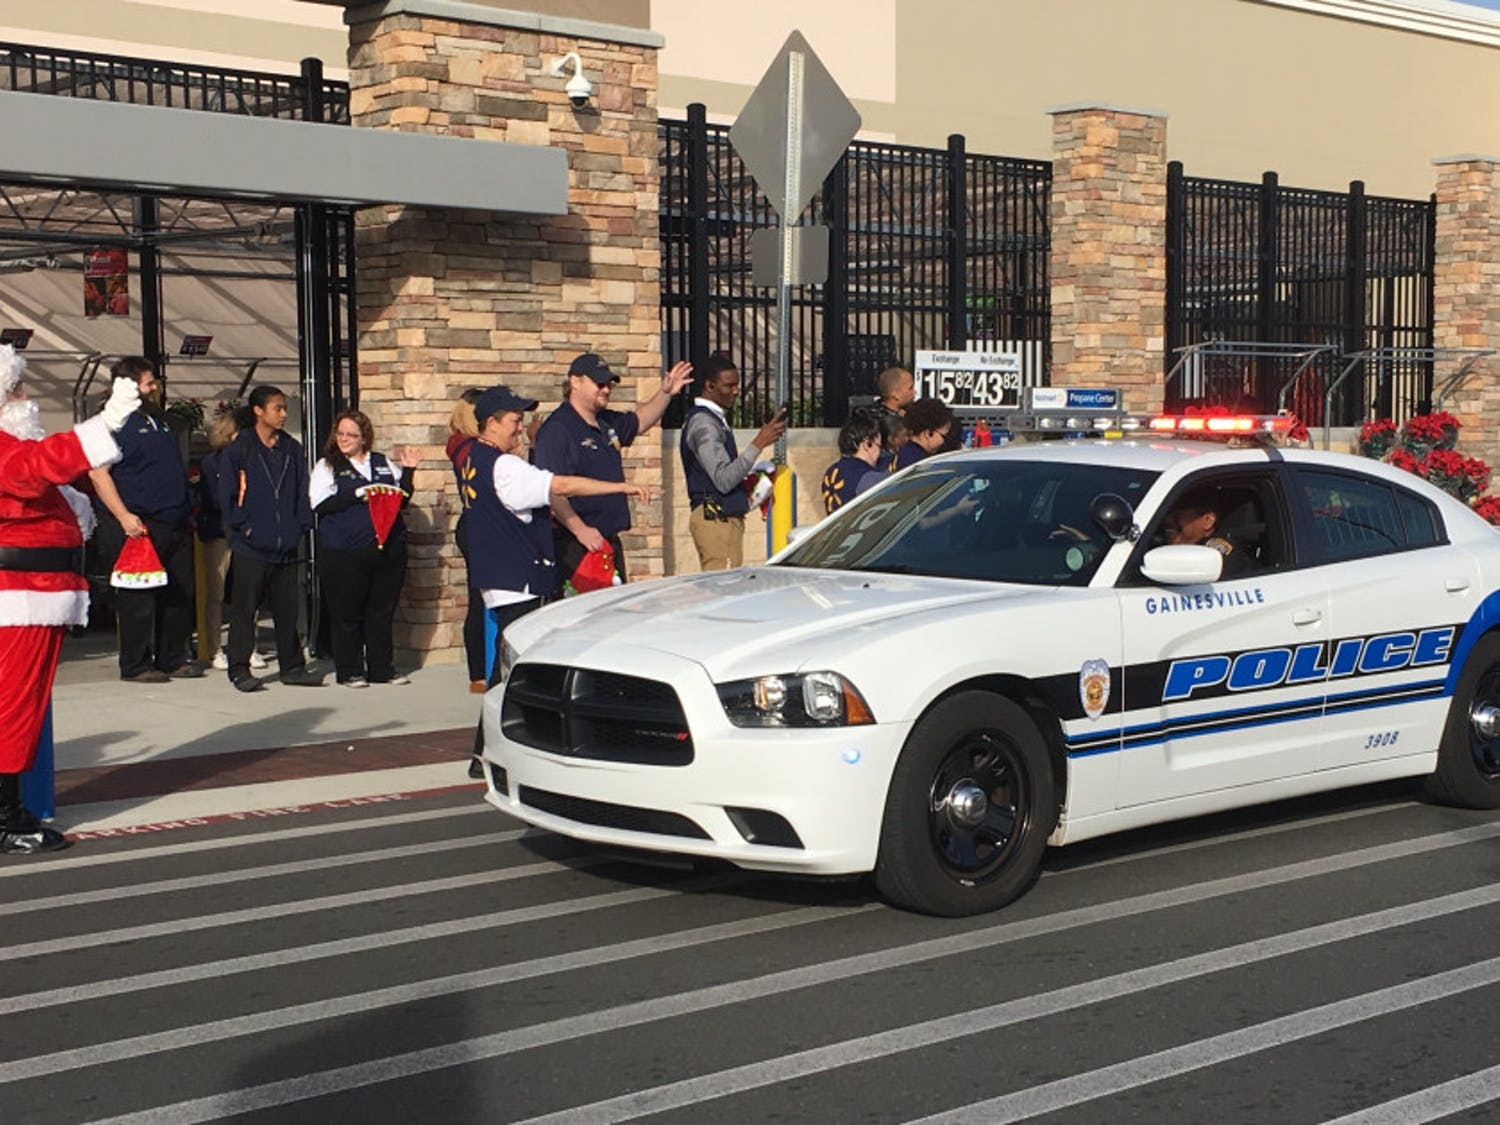 More than 20 Alachua County students arrived at Walmart in police cars. Santa along with an eager group of Walmart employees greeted them before they began shopping.